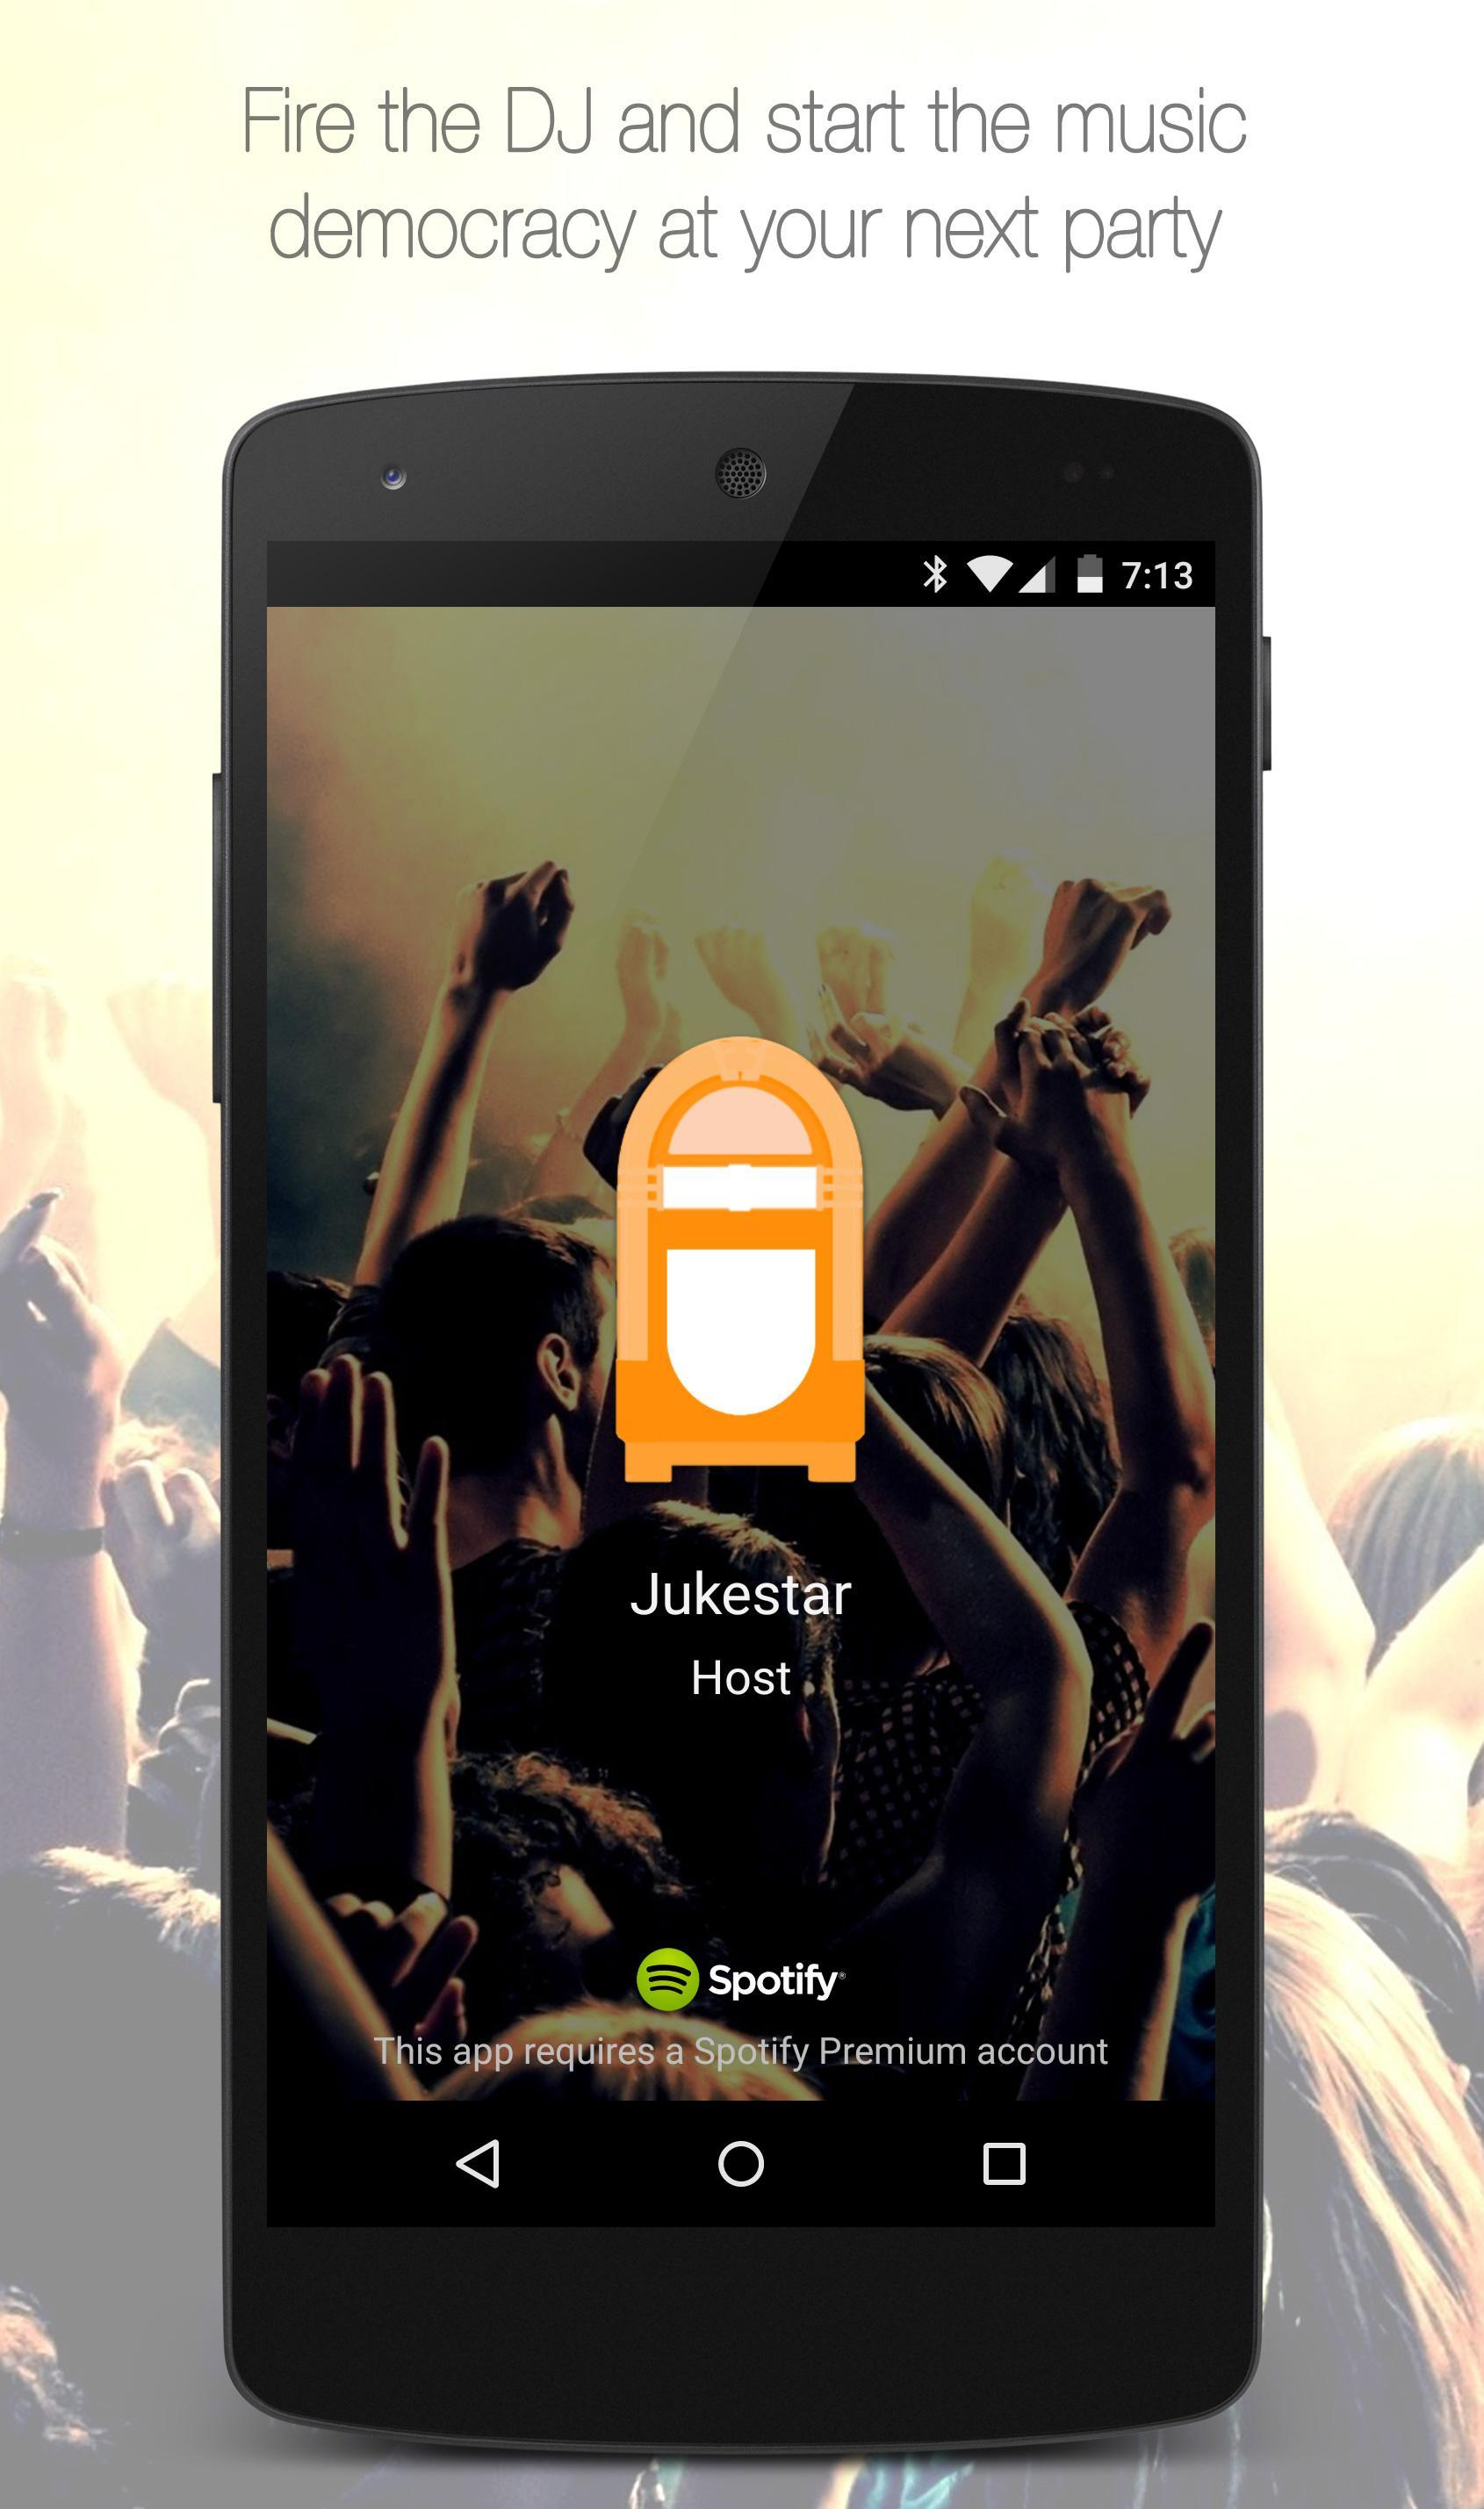 Jukestar - Party Host - Social Jukebox for Spotify for Android - APK